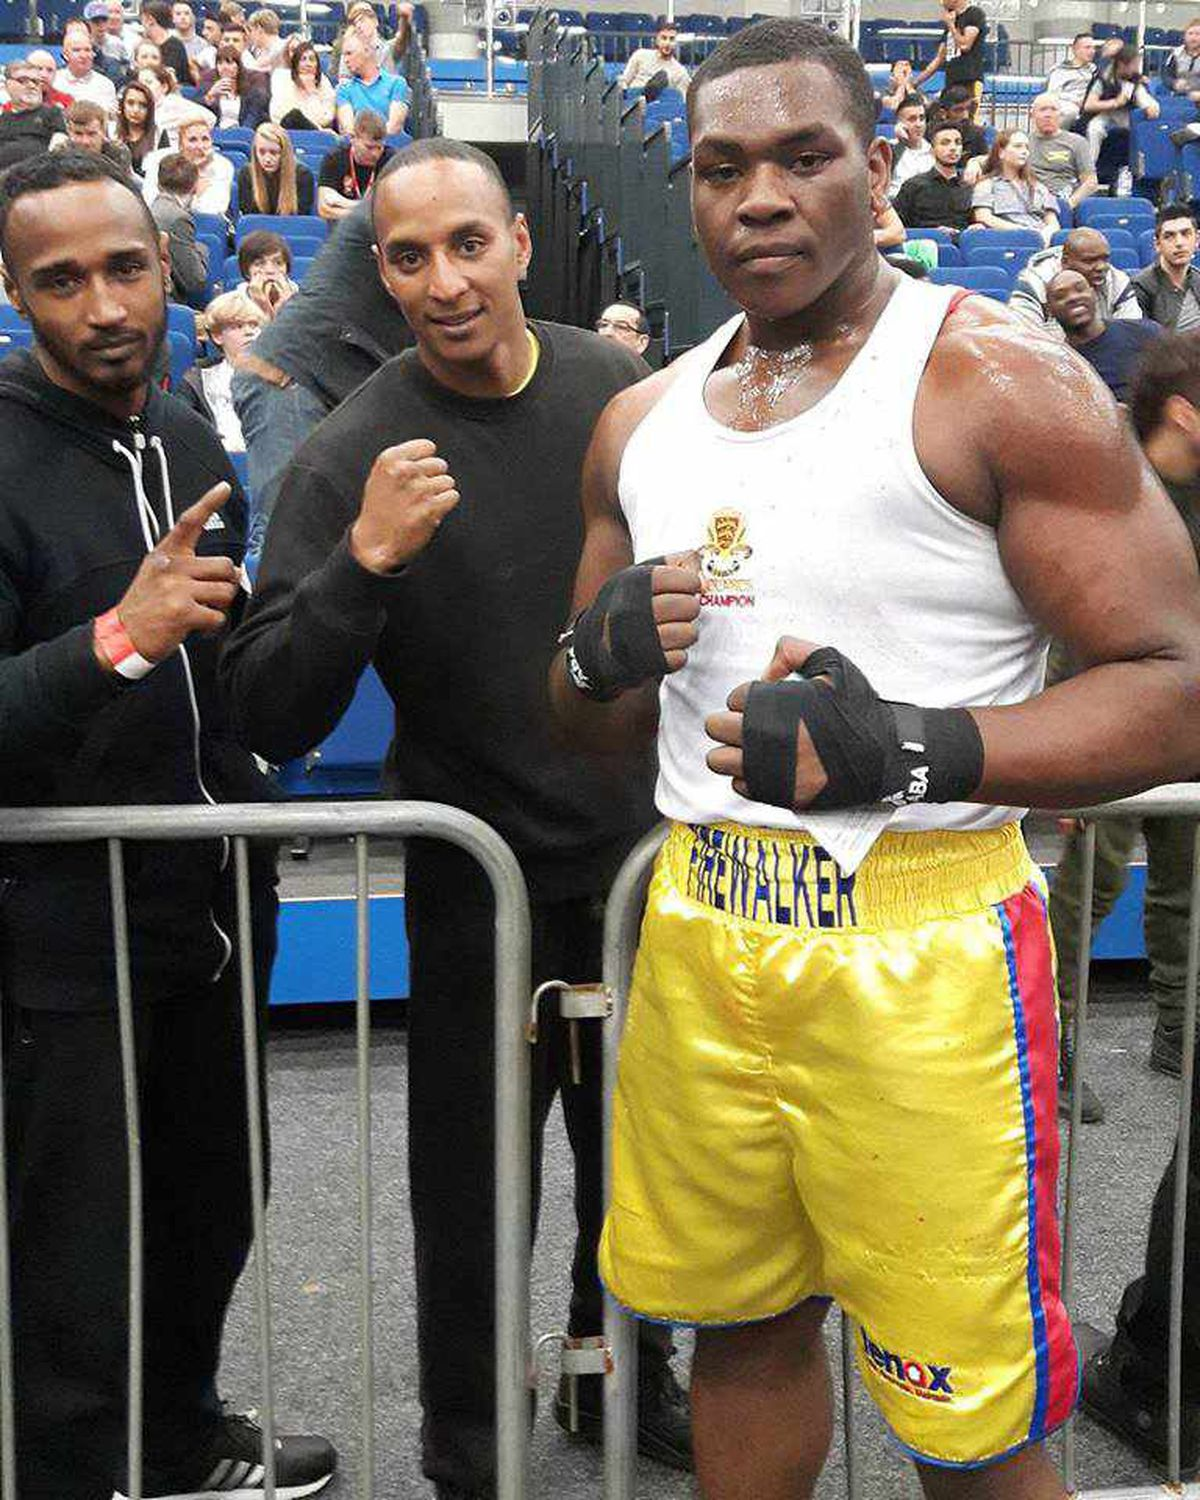 Firewalker's Hosea Stewart with his supporters after victory at the Doncaster Dome last weekend.